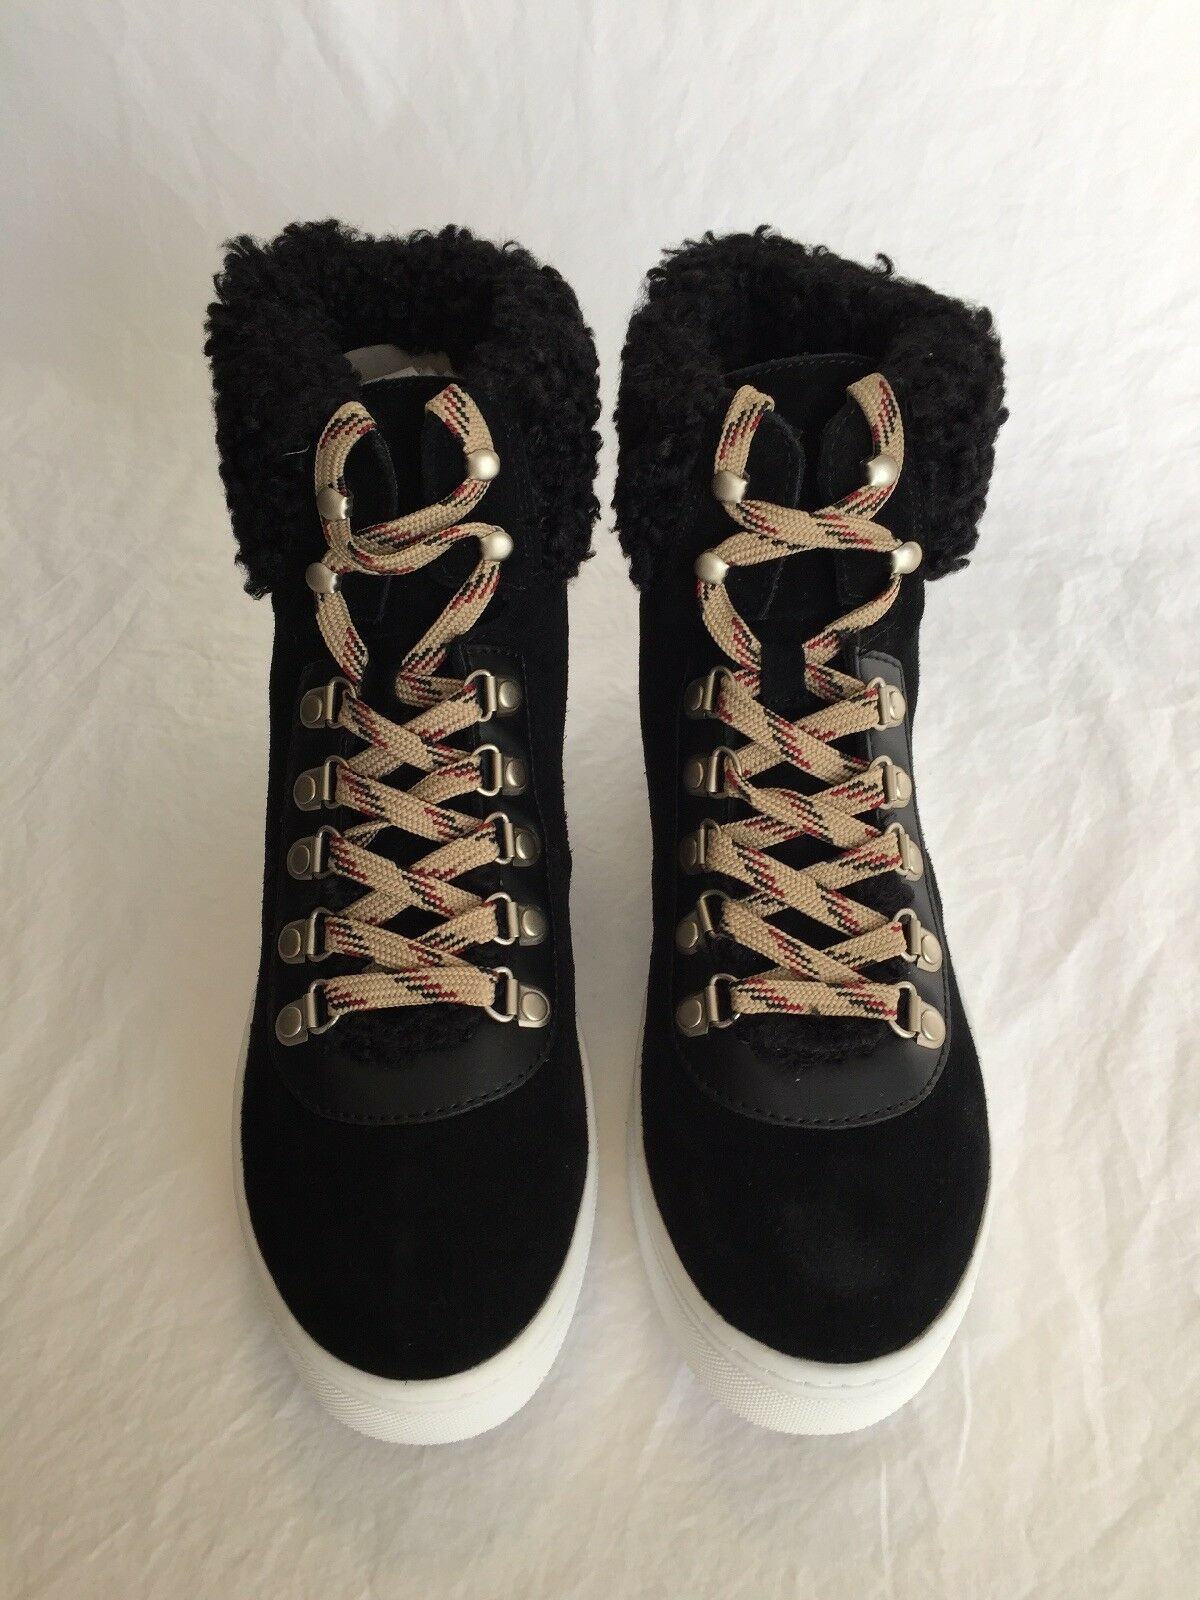 59dd4e48470f Sam Edelman Luther Black Faux Shearling Suede High Top SNEAKERS Shoes Size  7.5 M for sale online